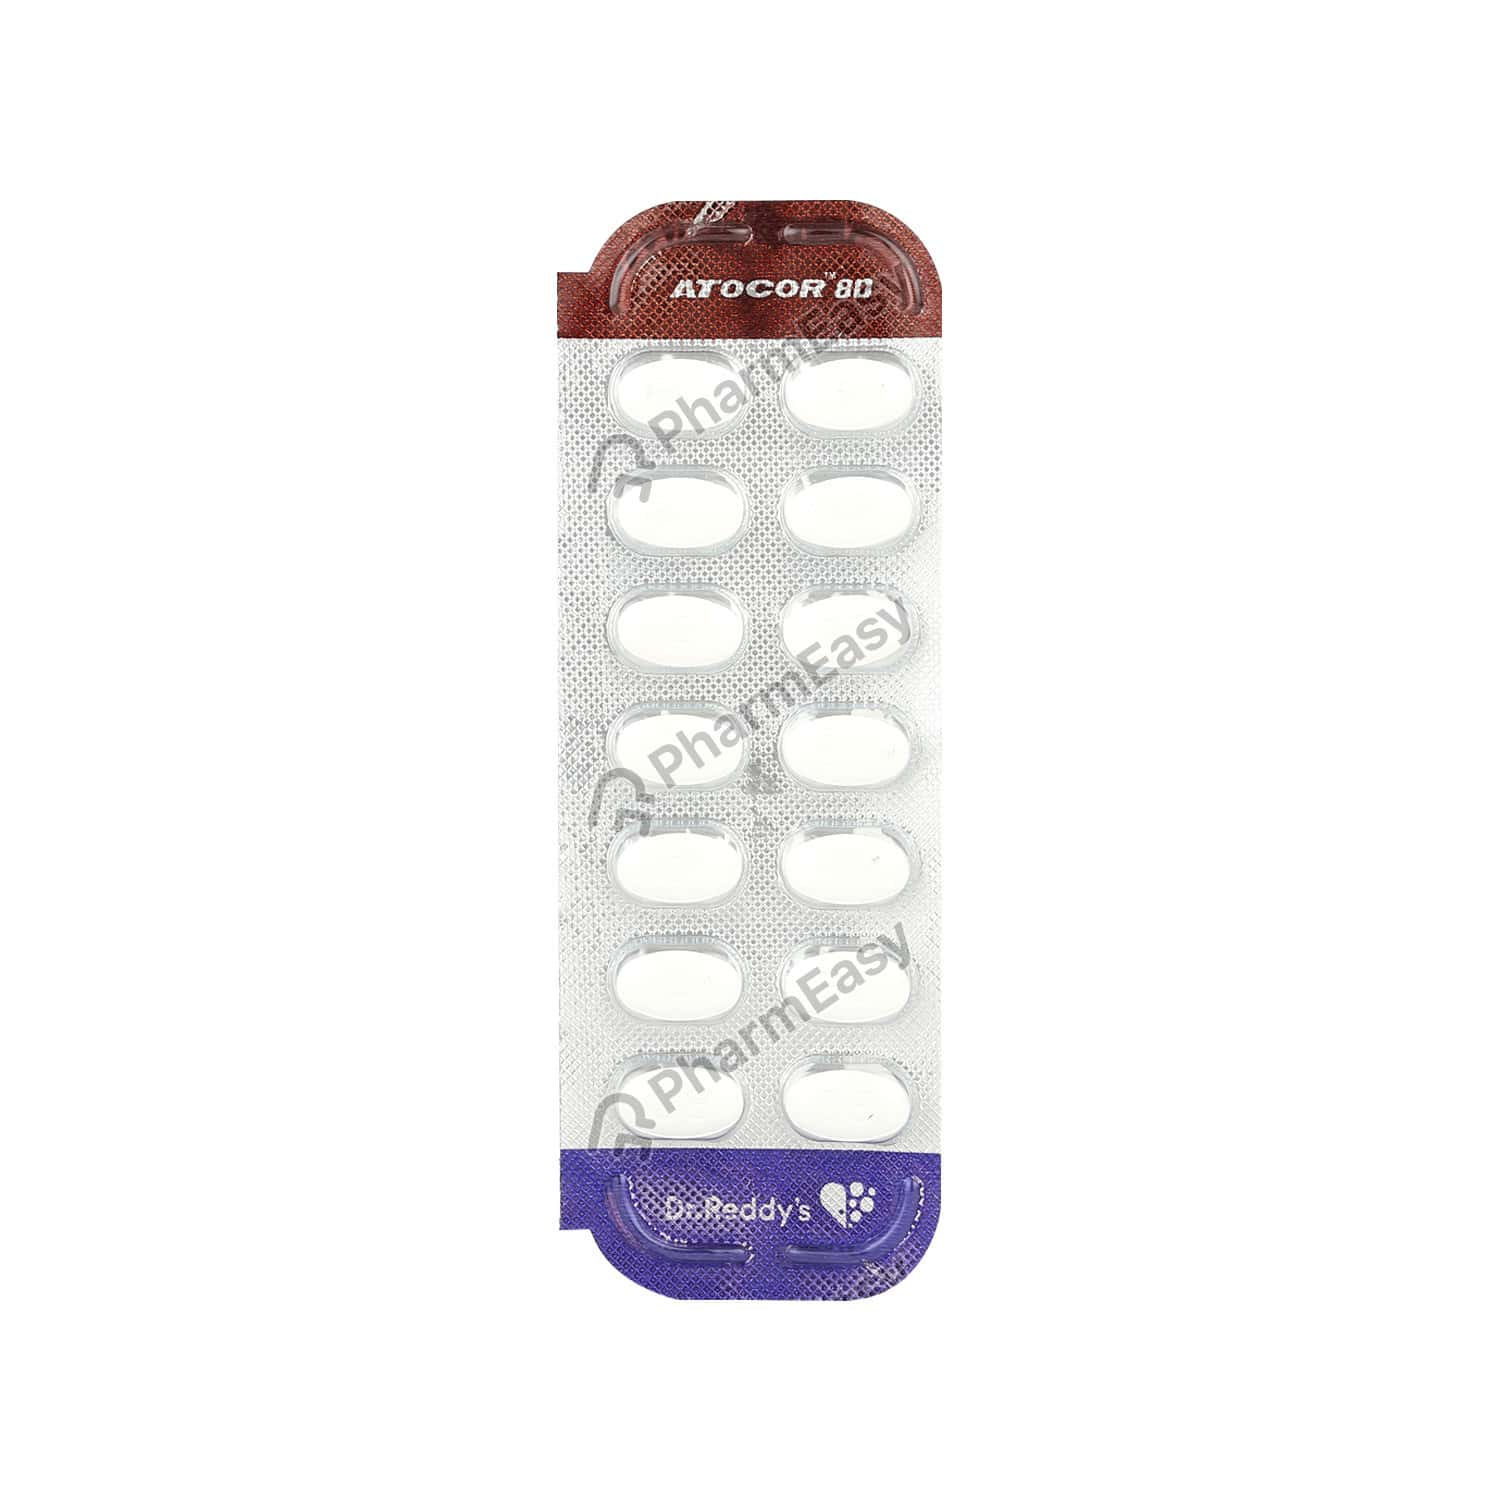 Atocor 80 Strip Of 14 Tablets